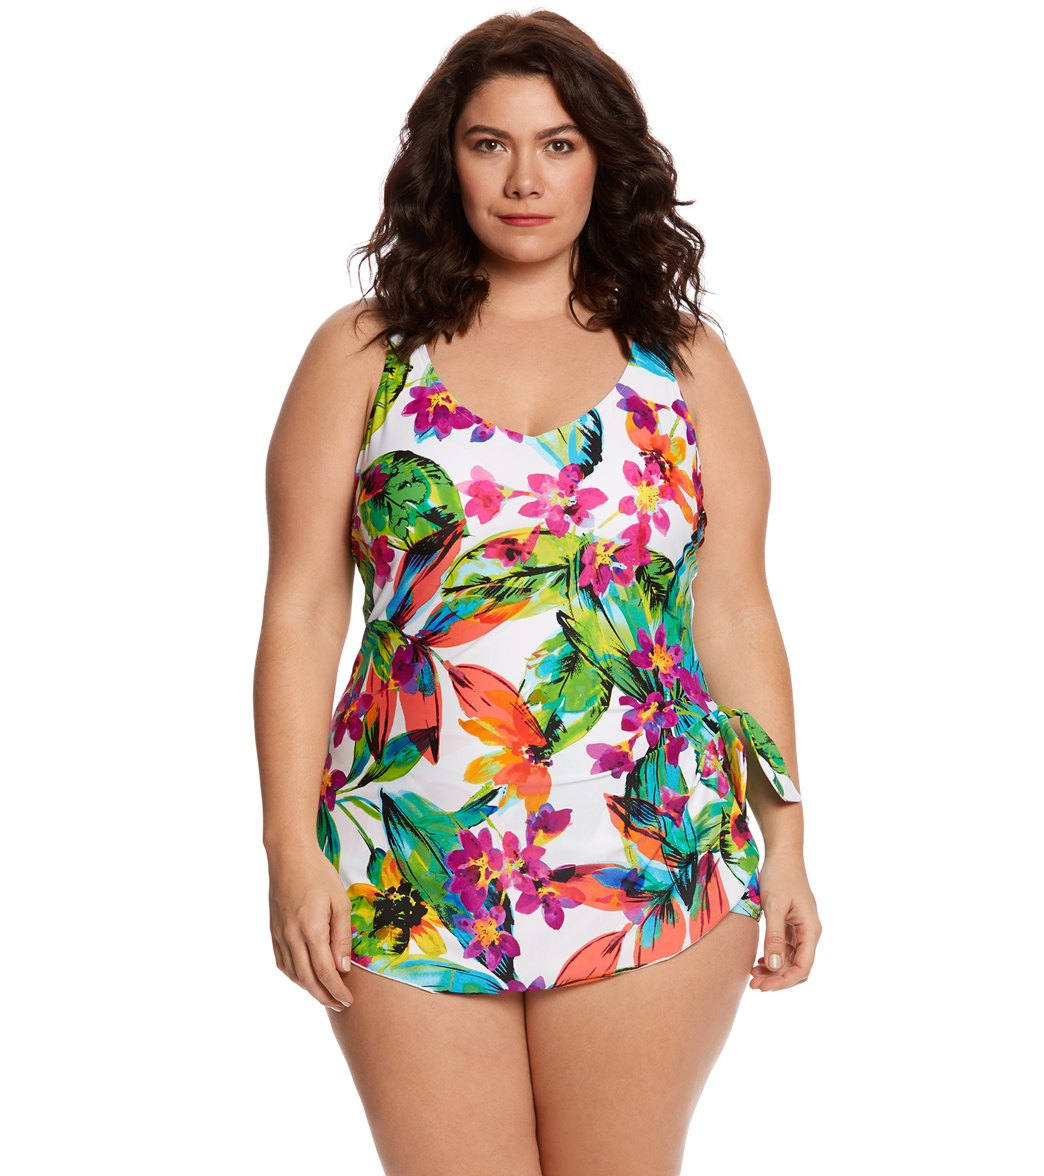 ac9b7bc8476 ... Summer Bounty Wide Strap Sarong One Piece Swimsuit. Play Video. MODEL  MEASUREMENTS